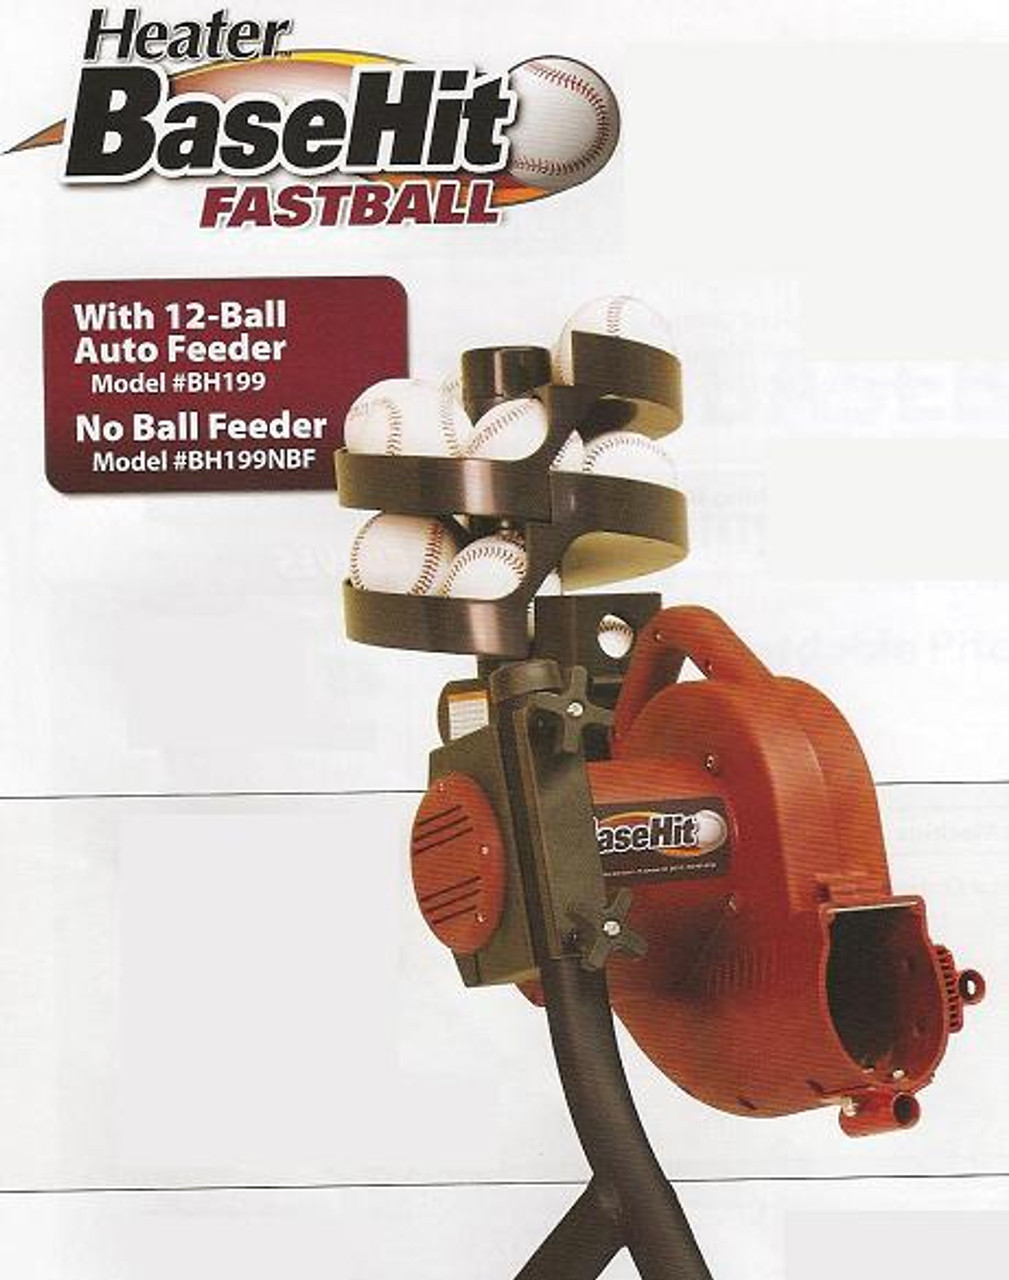 Heater Basehit Fastball Variable Speed Pitching Machine